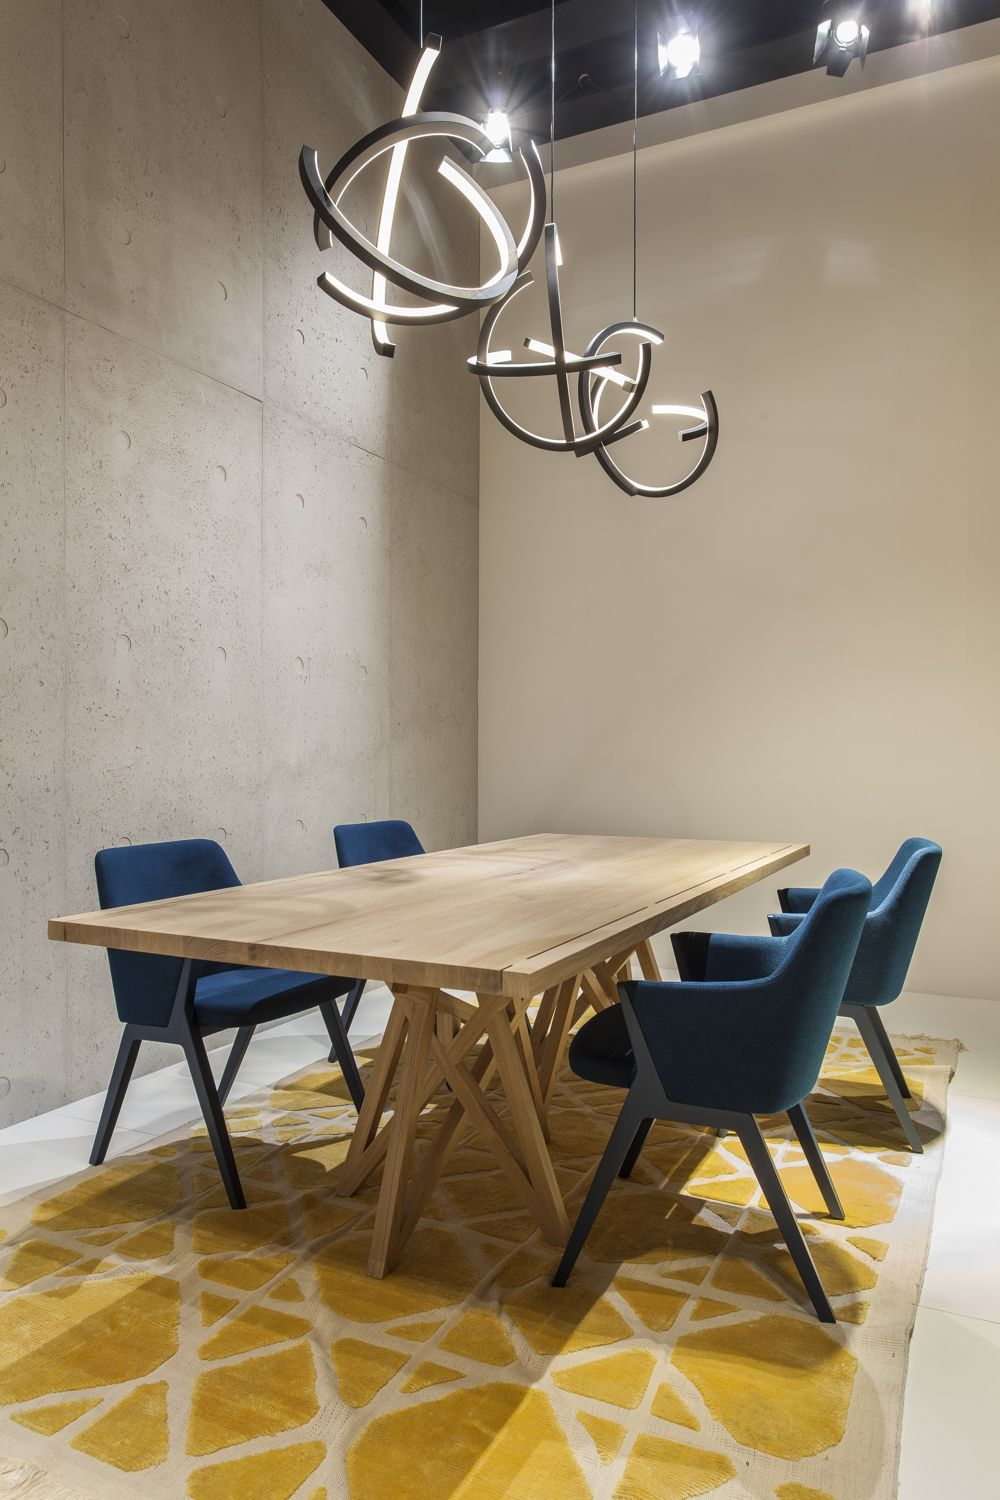 Download The Catalogue And Request Prices Of Track Round Table By Roche Bobois Extending Round Dining Tab In 2020 With Images Round Dining Table Dining Table Metal Dining Table